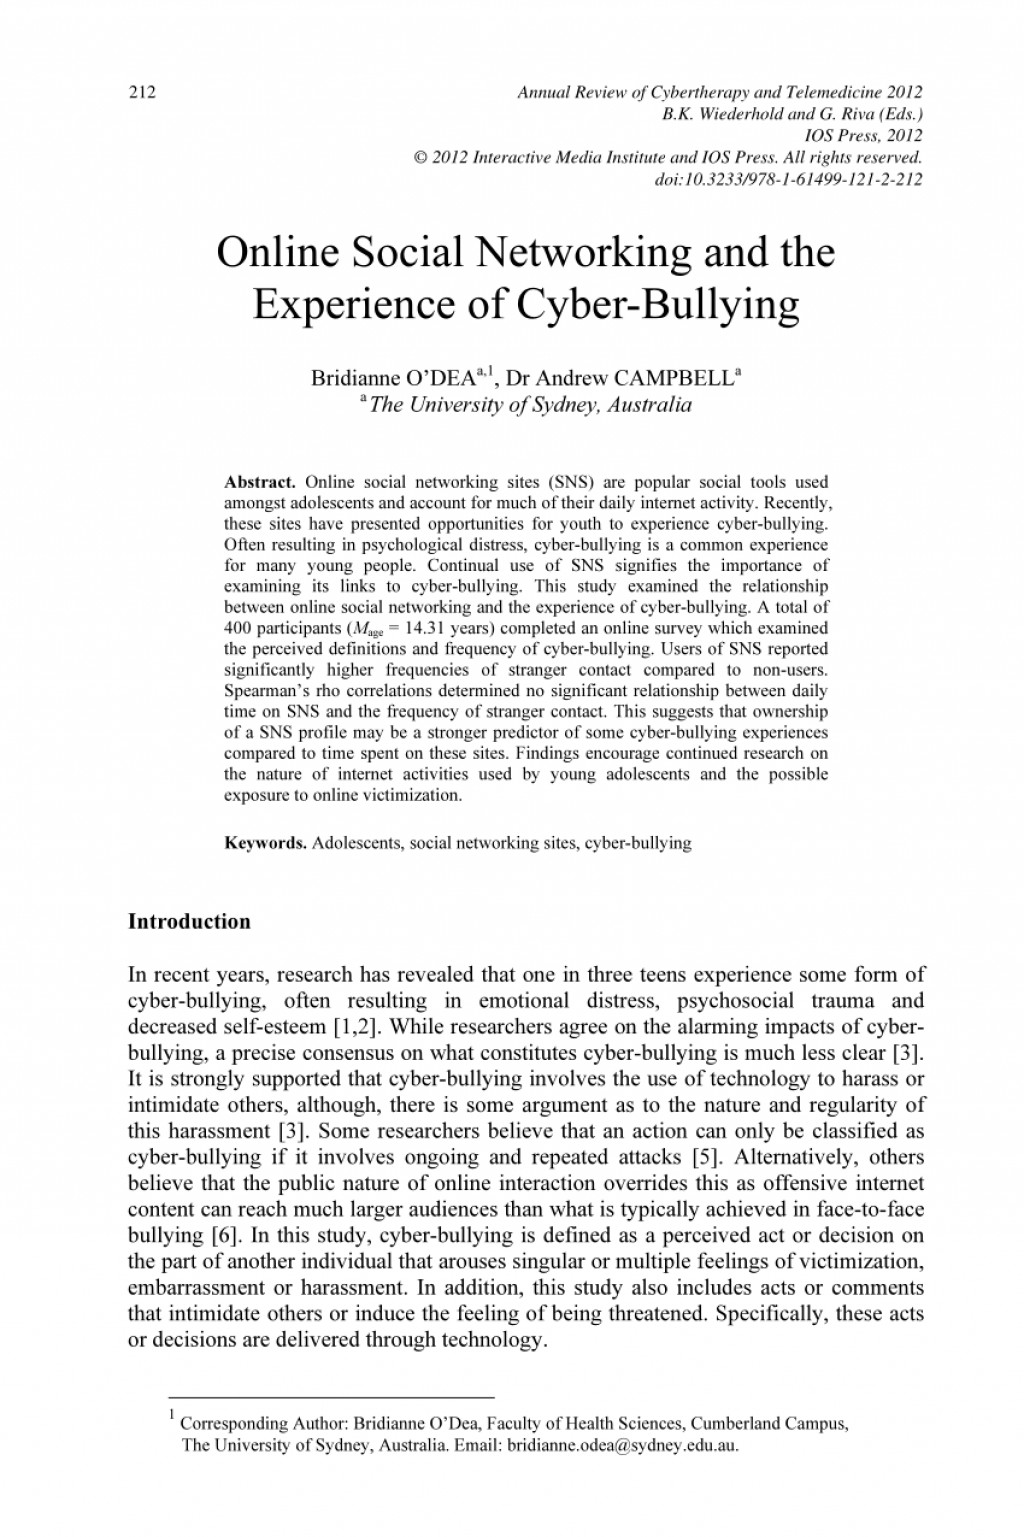 003 Largepreview Research Paper Introduction For Shocking Cyberbullying Large